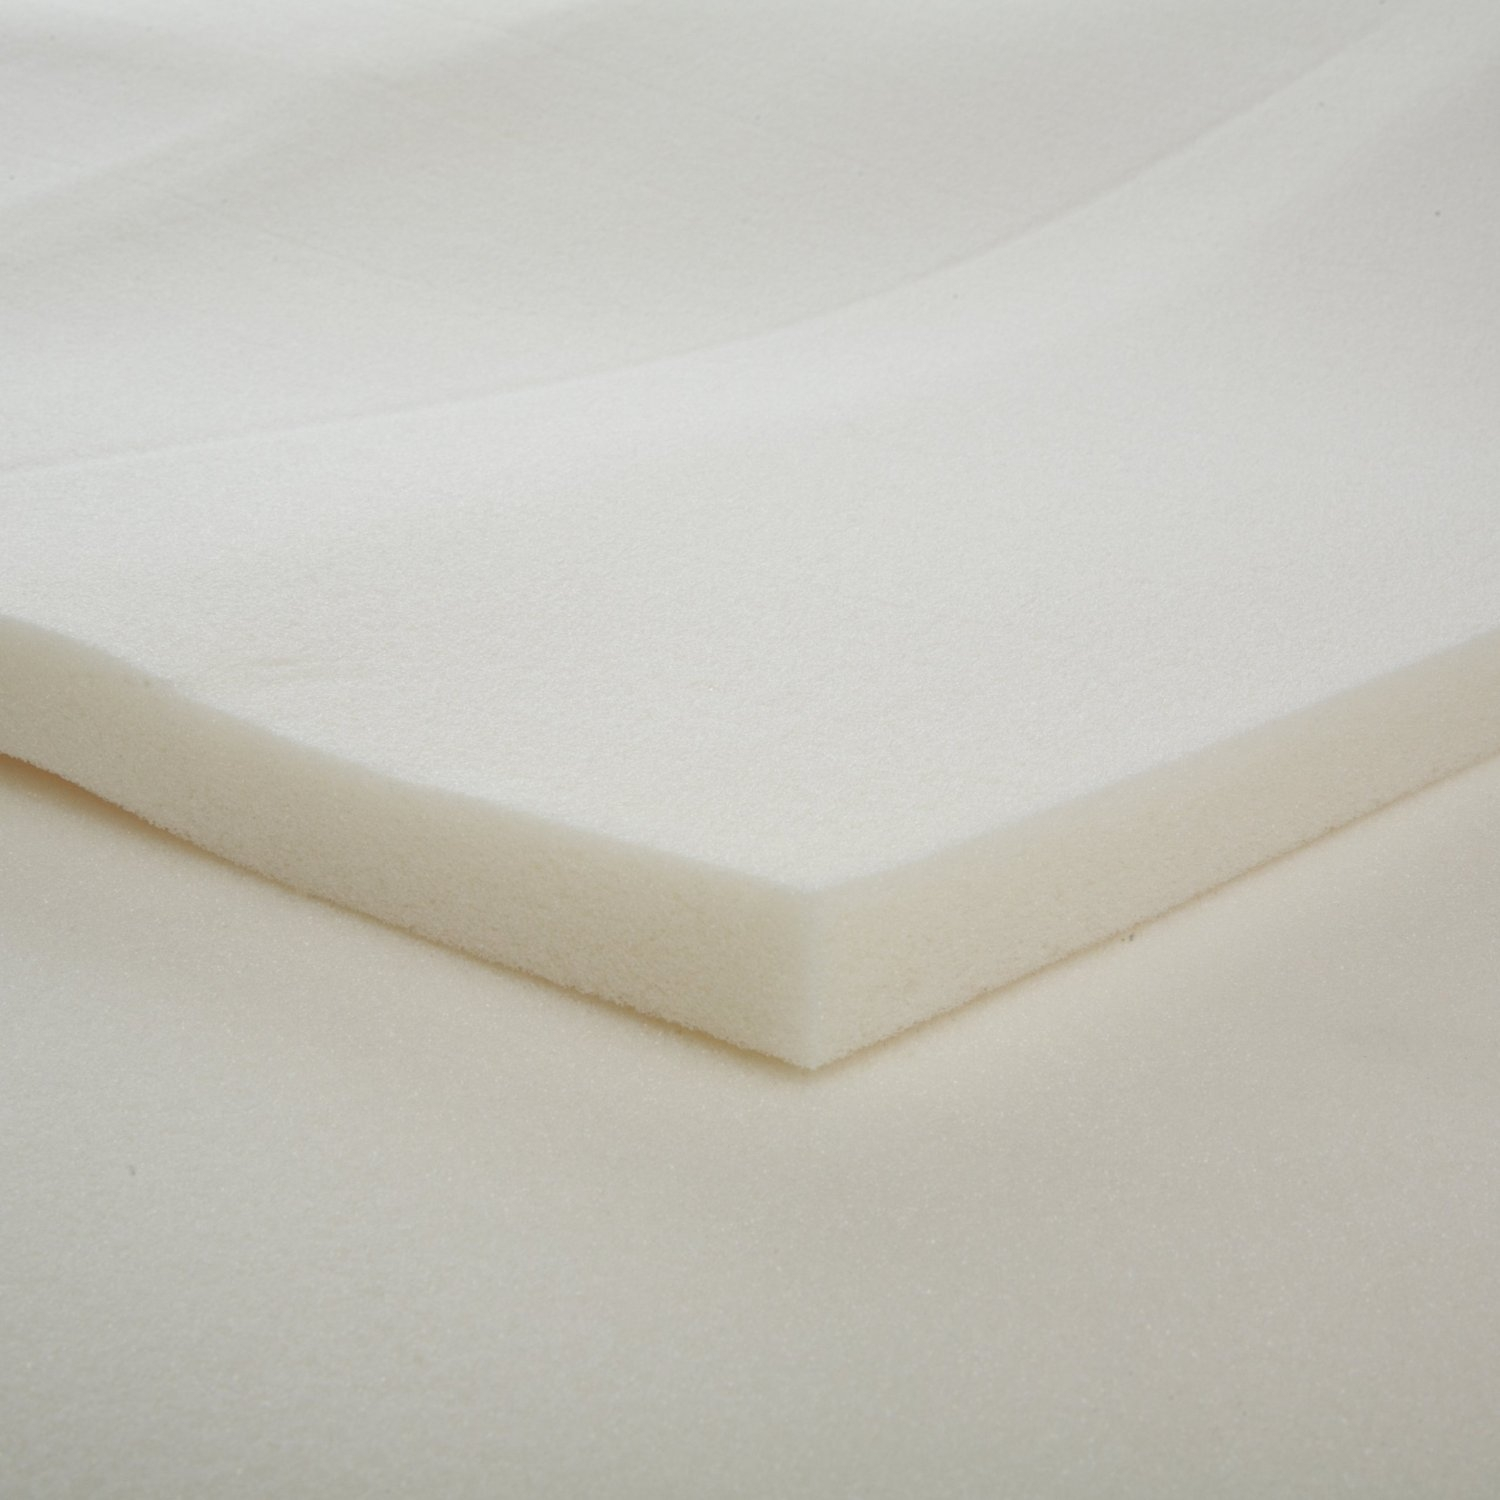 Mattress Topper Thick Twin Xl 1 Inch Thick Memory Foam Mattress Topper Made In Usa